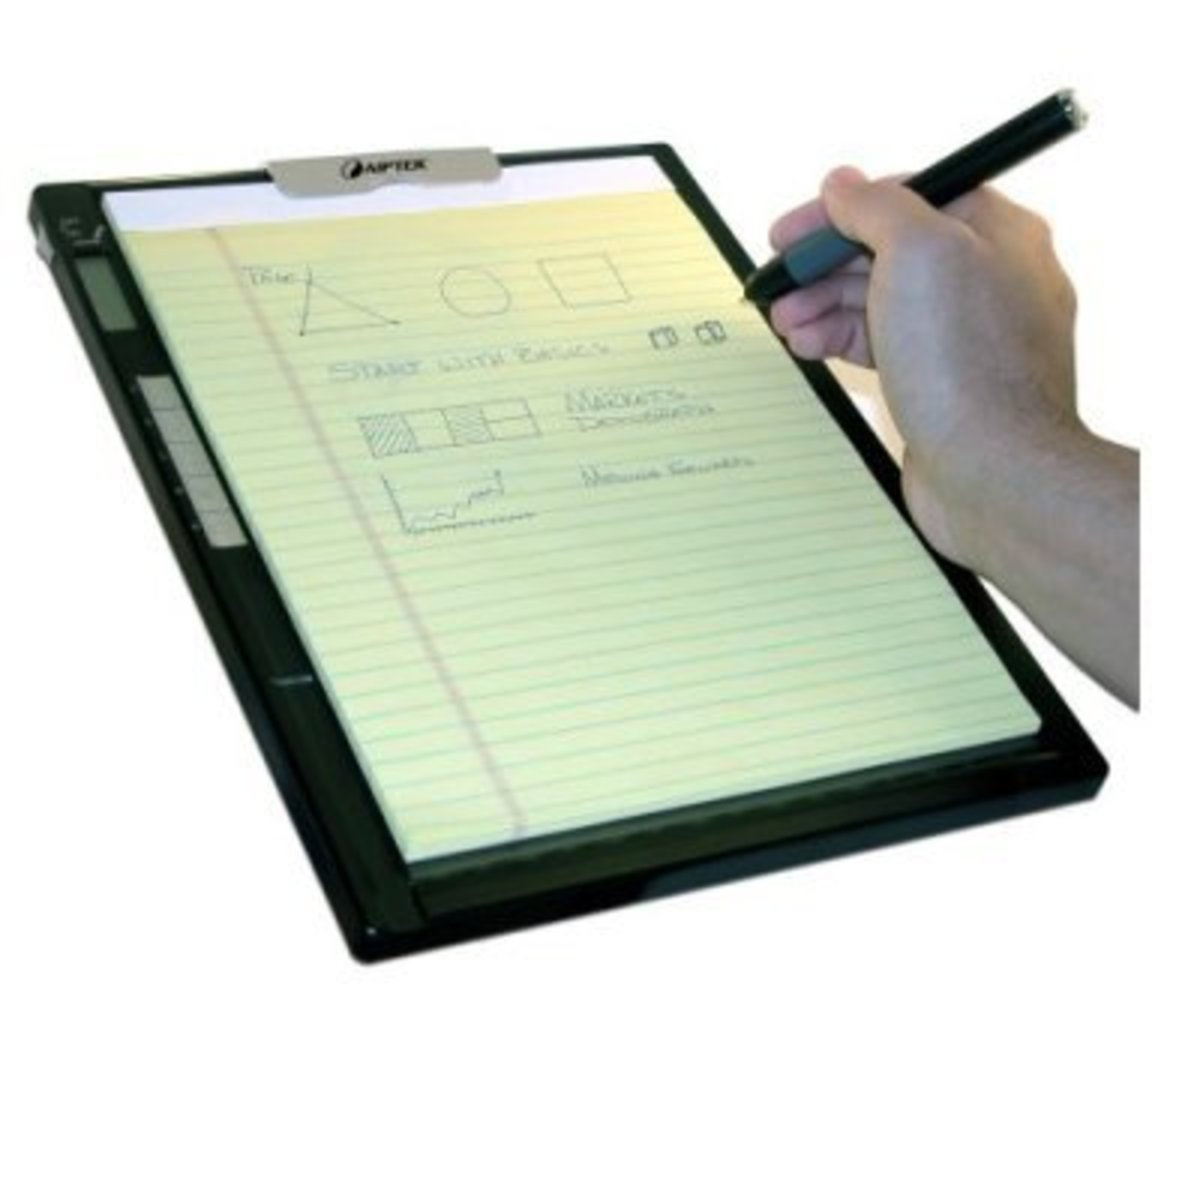 Digital Notepads - How Do They Compare to Tablet PCs